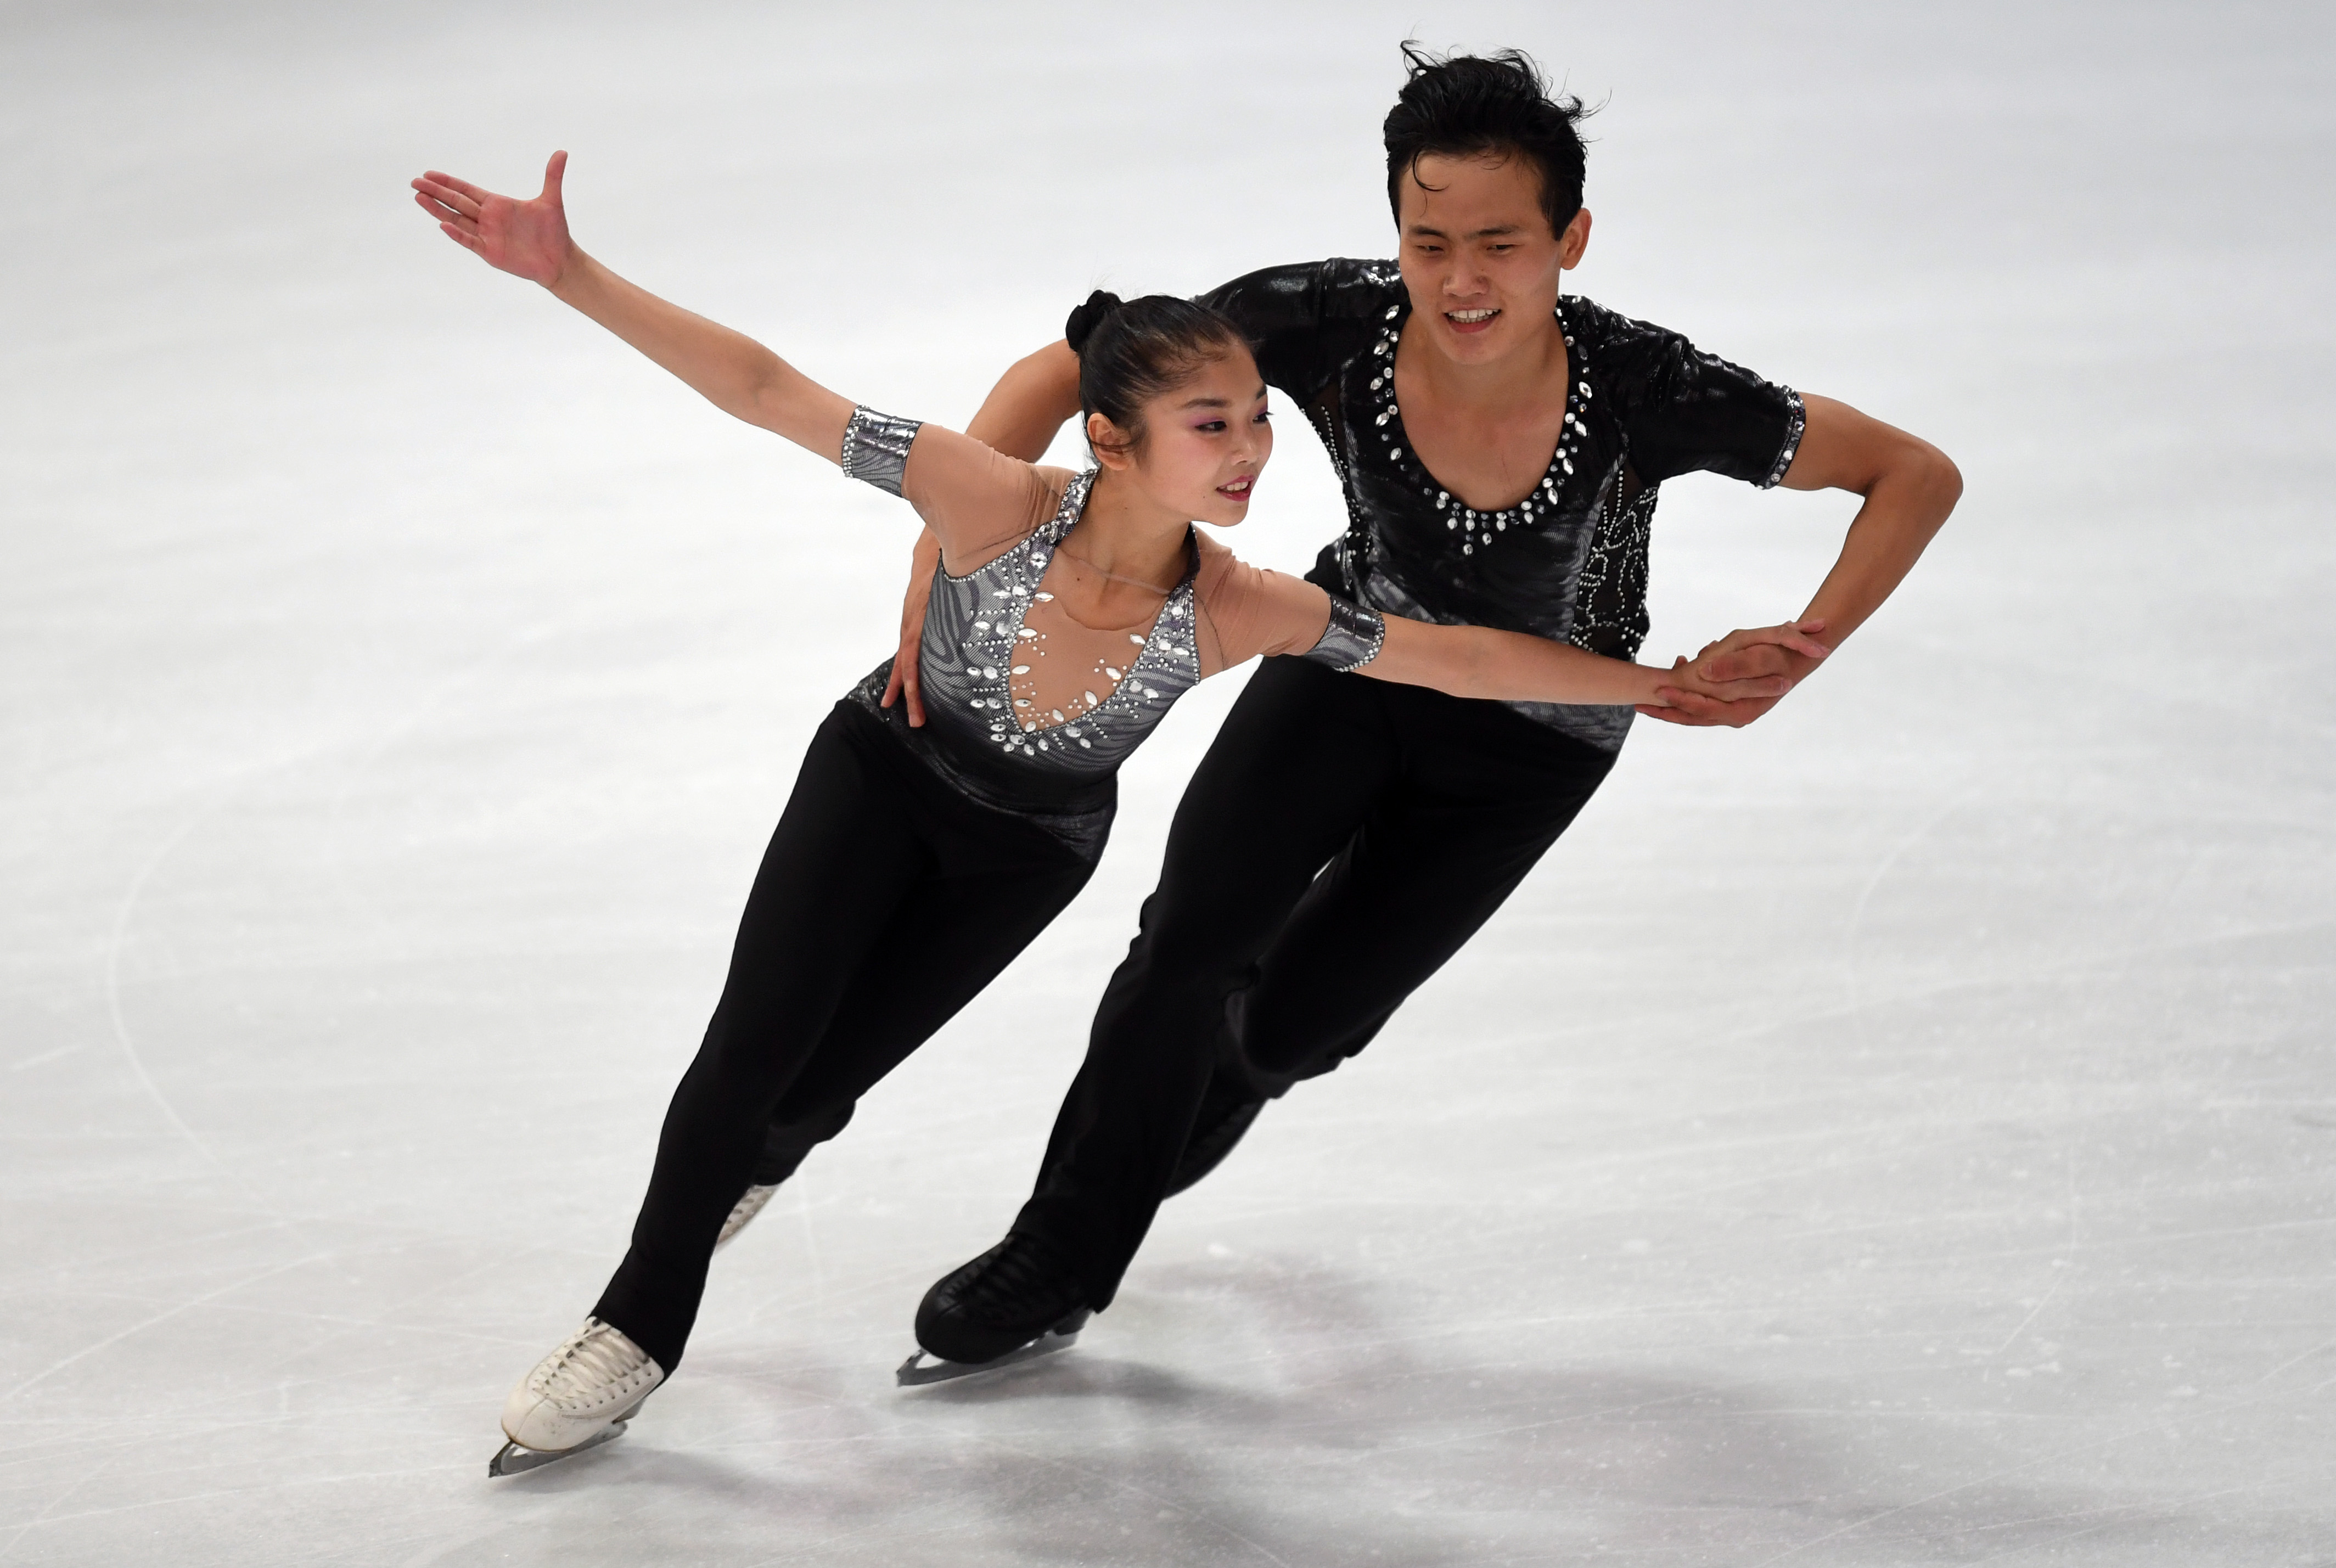 Ryom Tae-Ok and Kim Ju-Sik of North Korea perform during their pairs short program of the 49th Nebelhorn trophy figure skating competition in  Oberstdorf, southern Germany, on September 28, 2017. / AFP PHOTO / Christof STACHE        (Photo credit should read CHRISTOF STACHE/AFP/Getty Images)